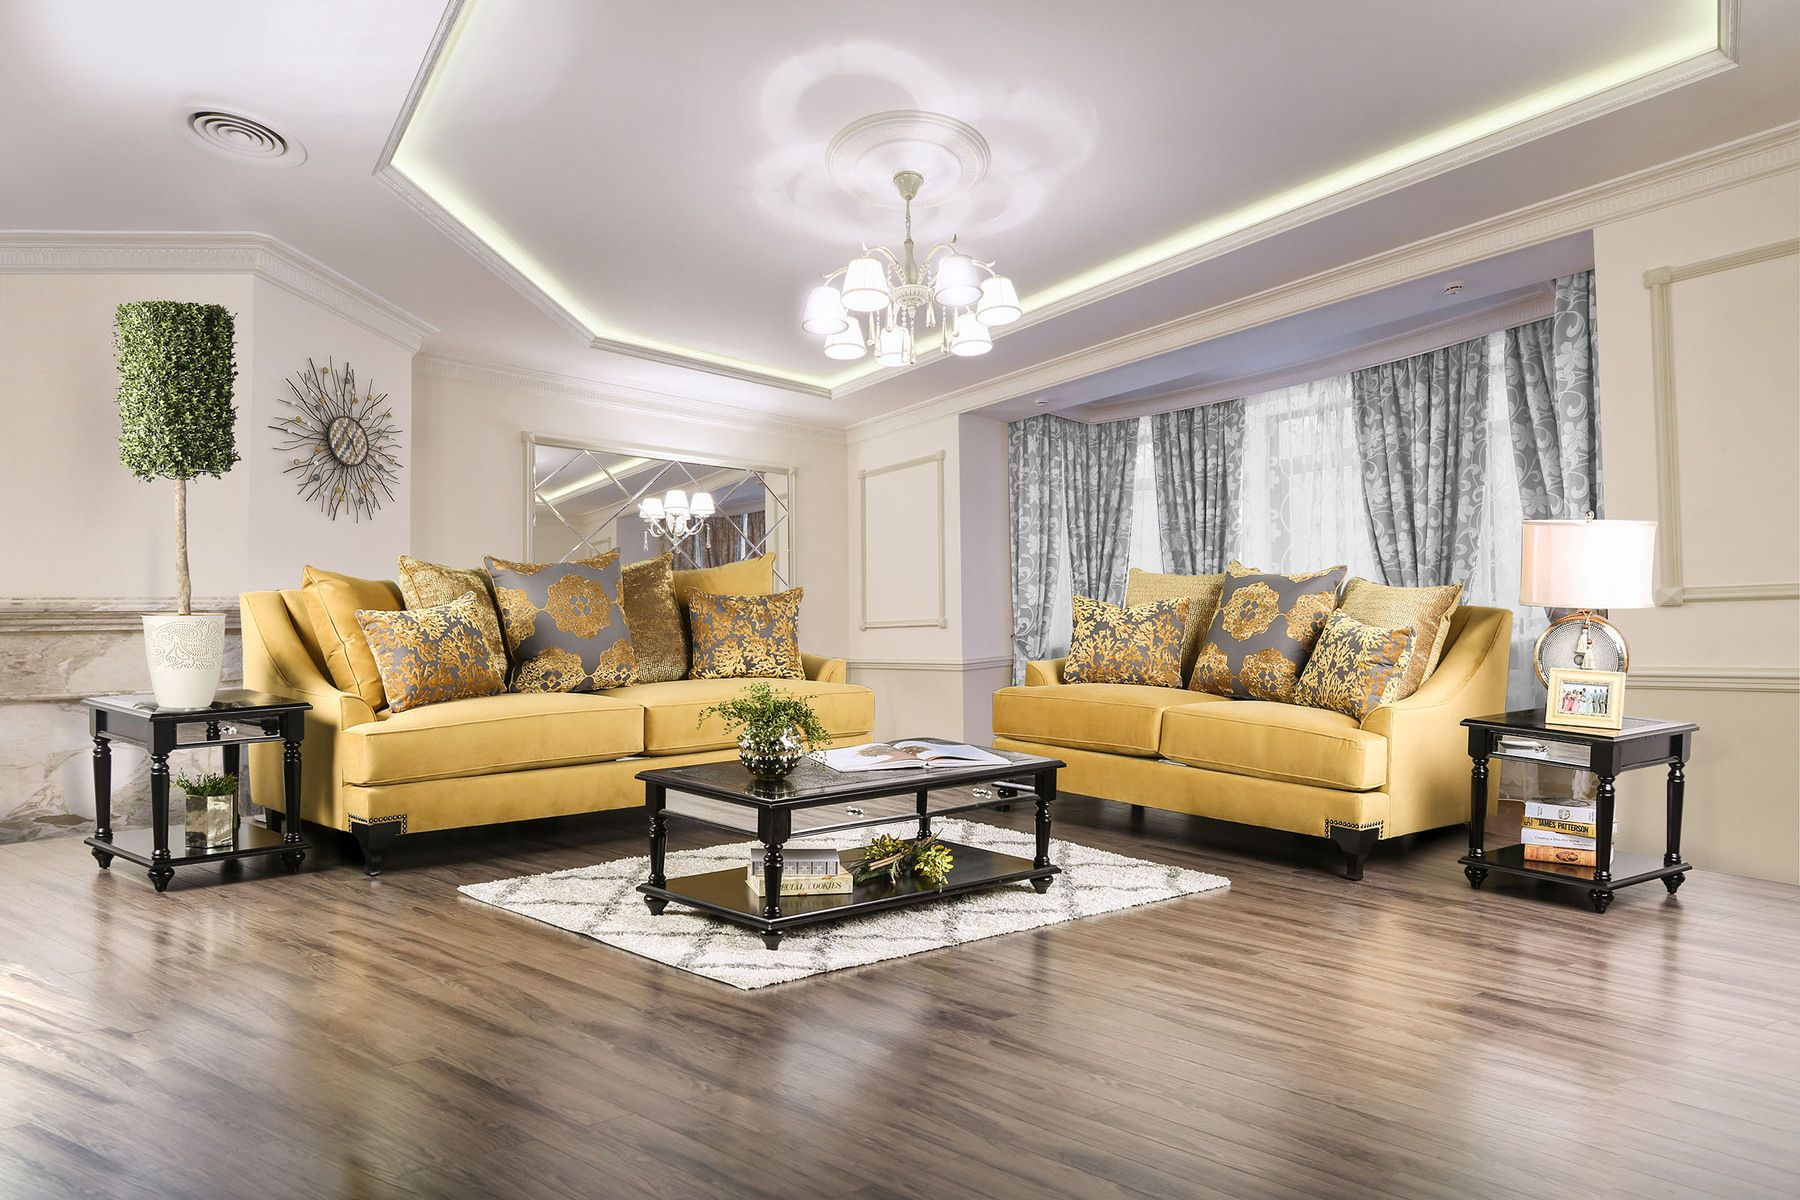 Viscontti Gold Sofa In 2020 Gold Sofa Living Room Sets Living